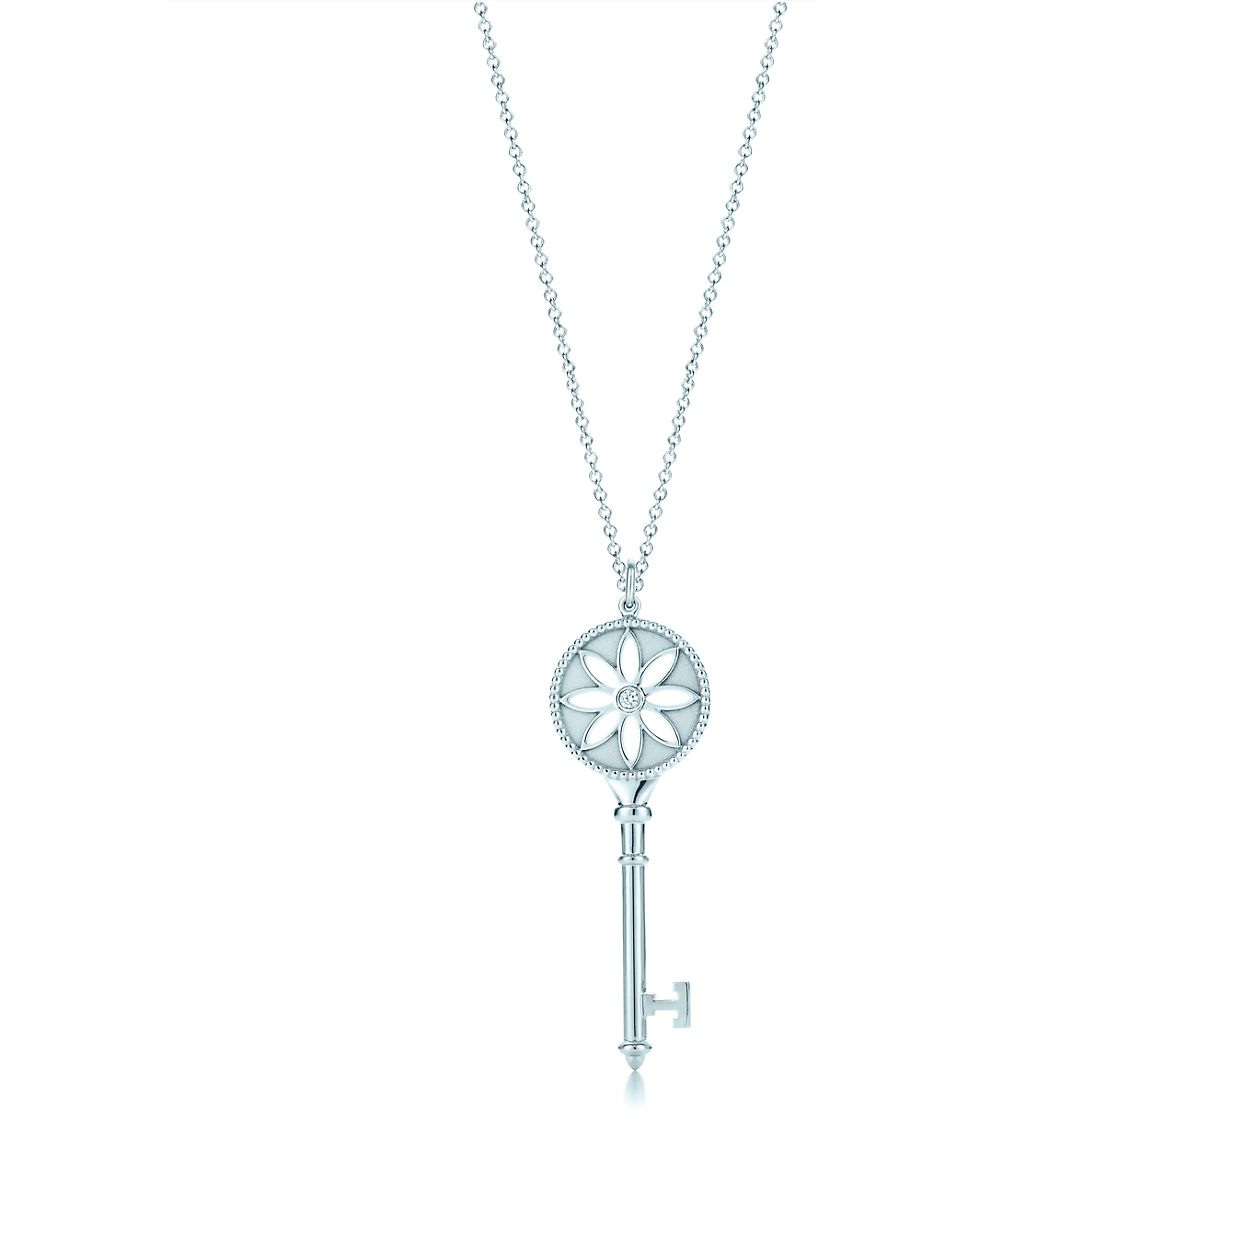 Tiffany Keys daisy key pendant in 18k white gold with a diamond on ...